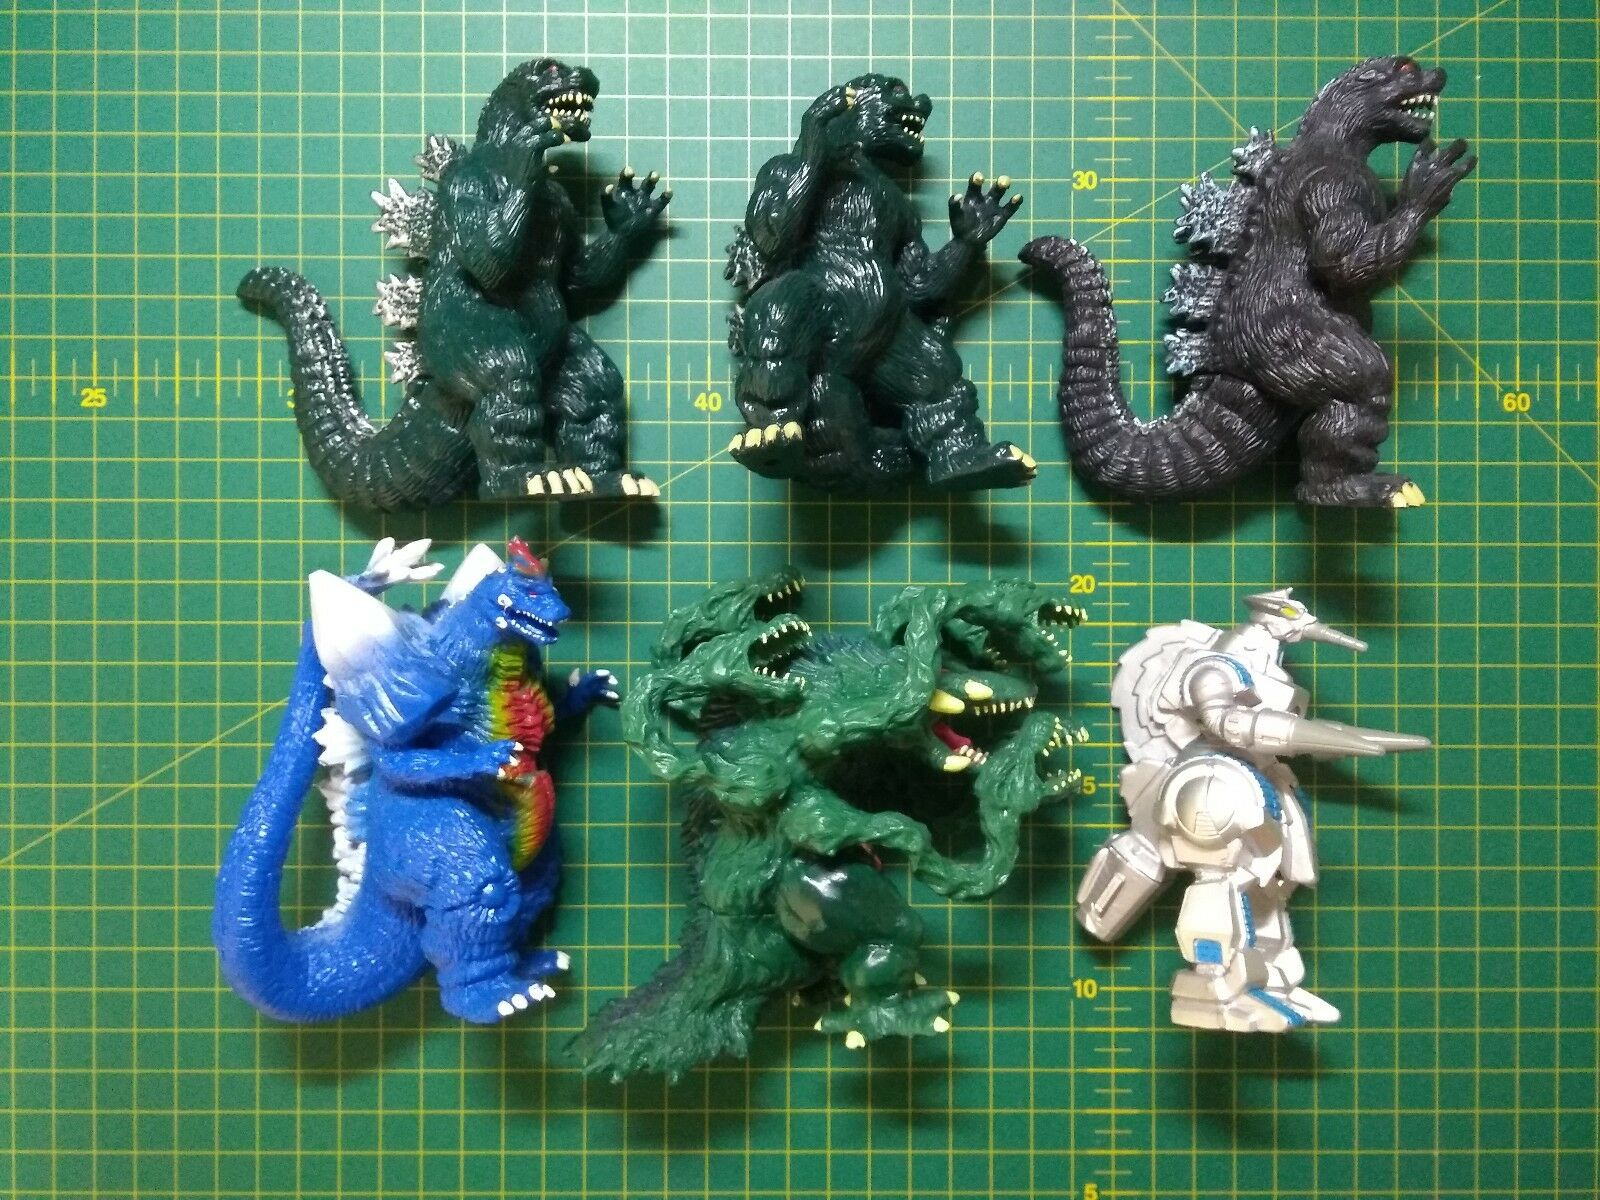 Trendmasters 94,95 small godzilla figures set of 6